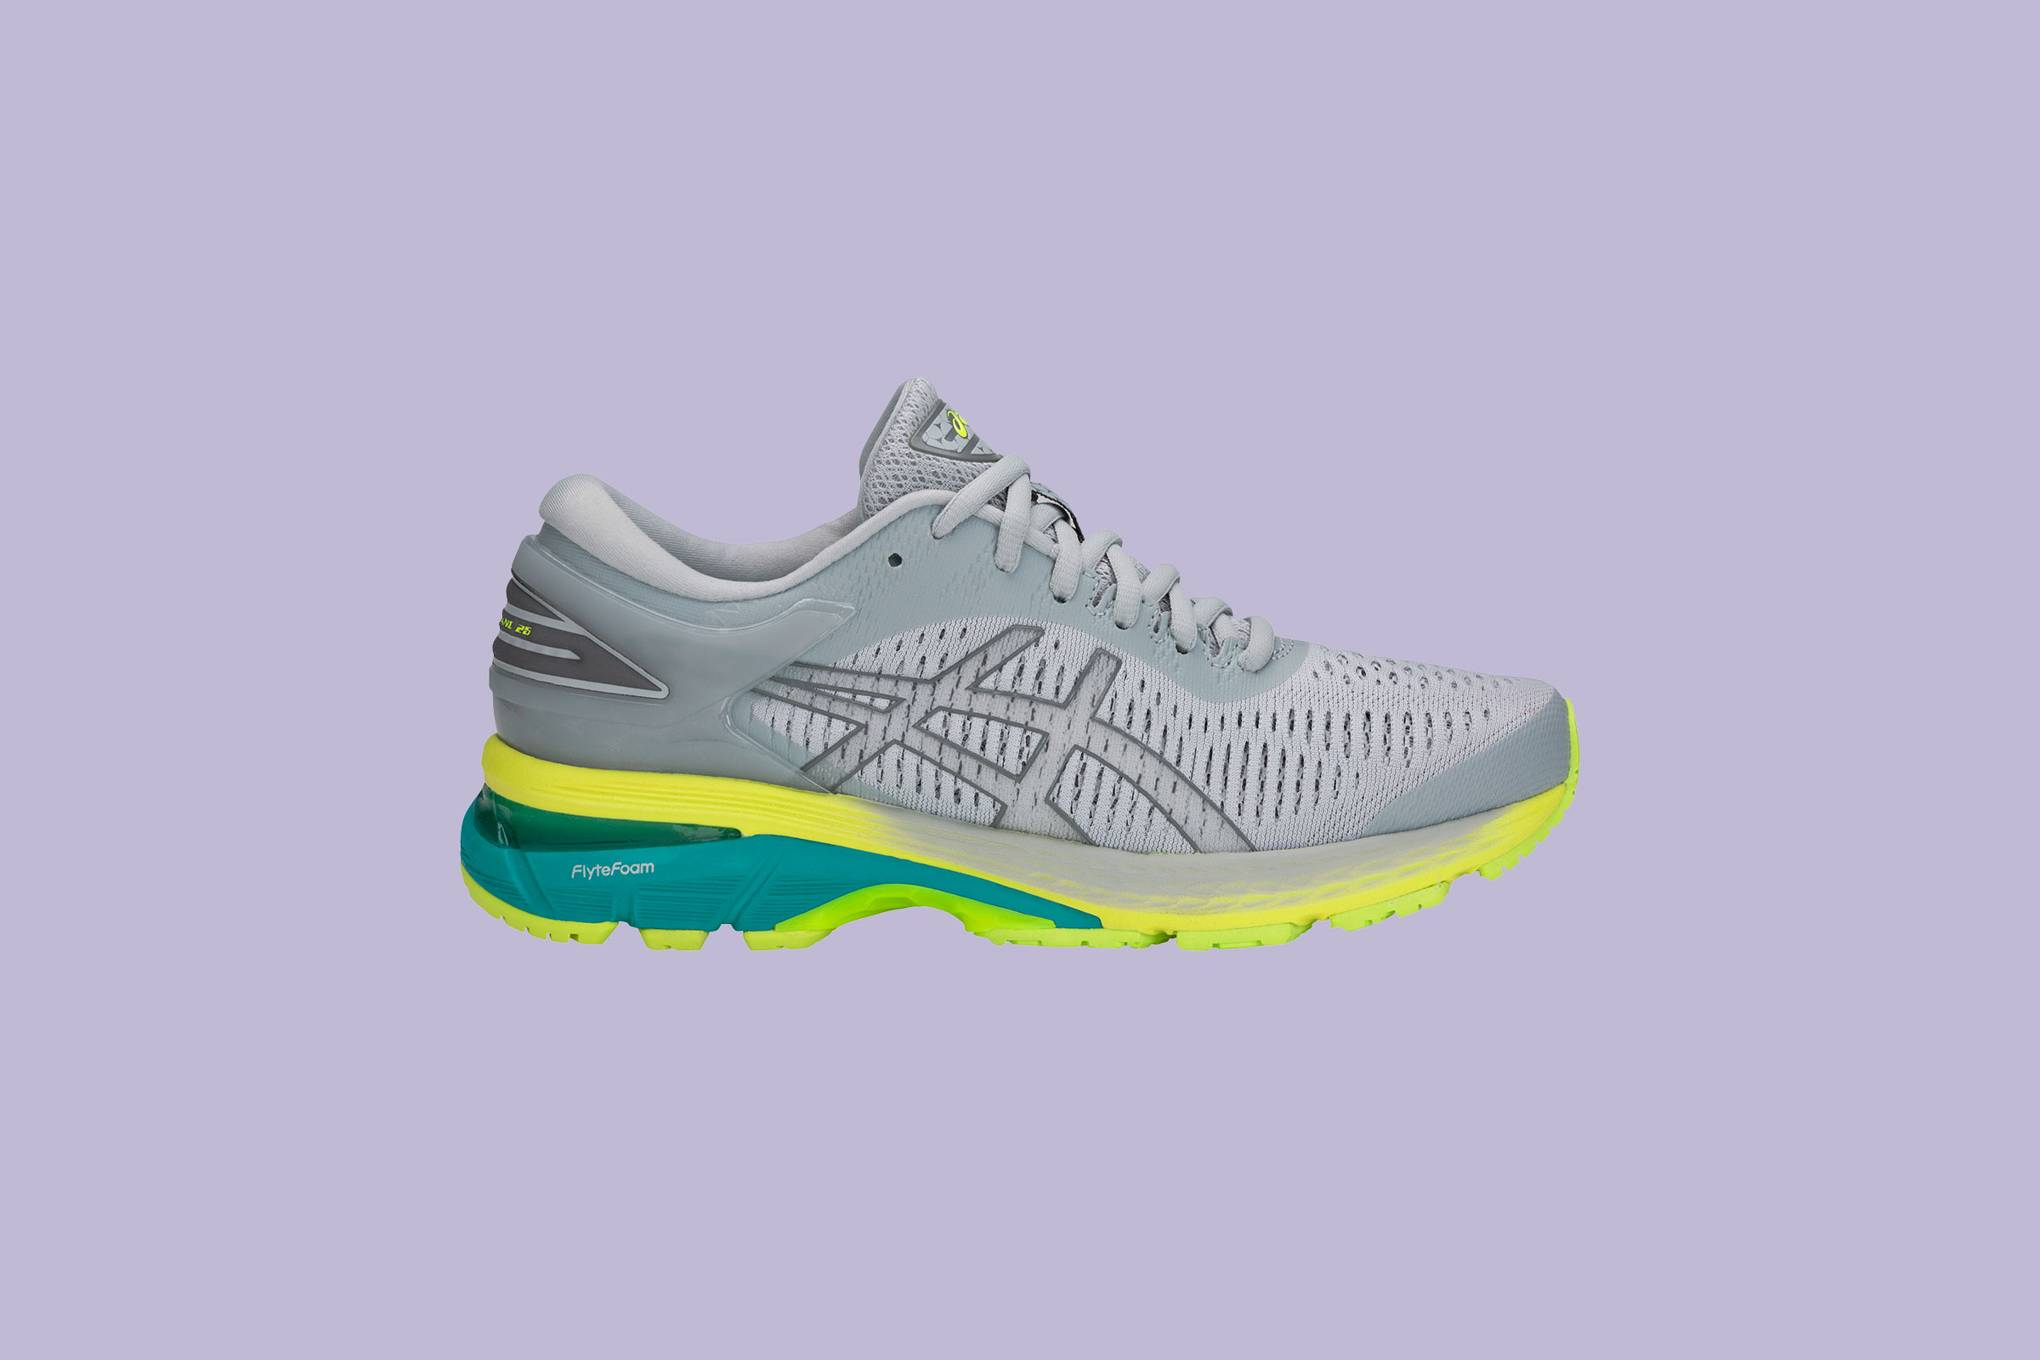 eb08afa0a6779 The best running shoes you can buy in 2019 | WIRED UK